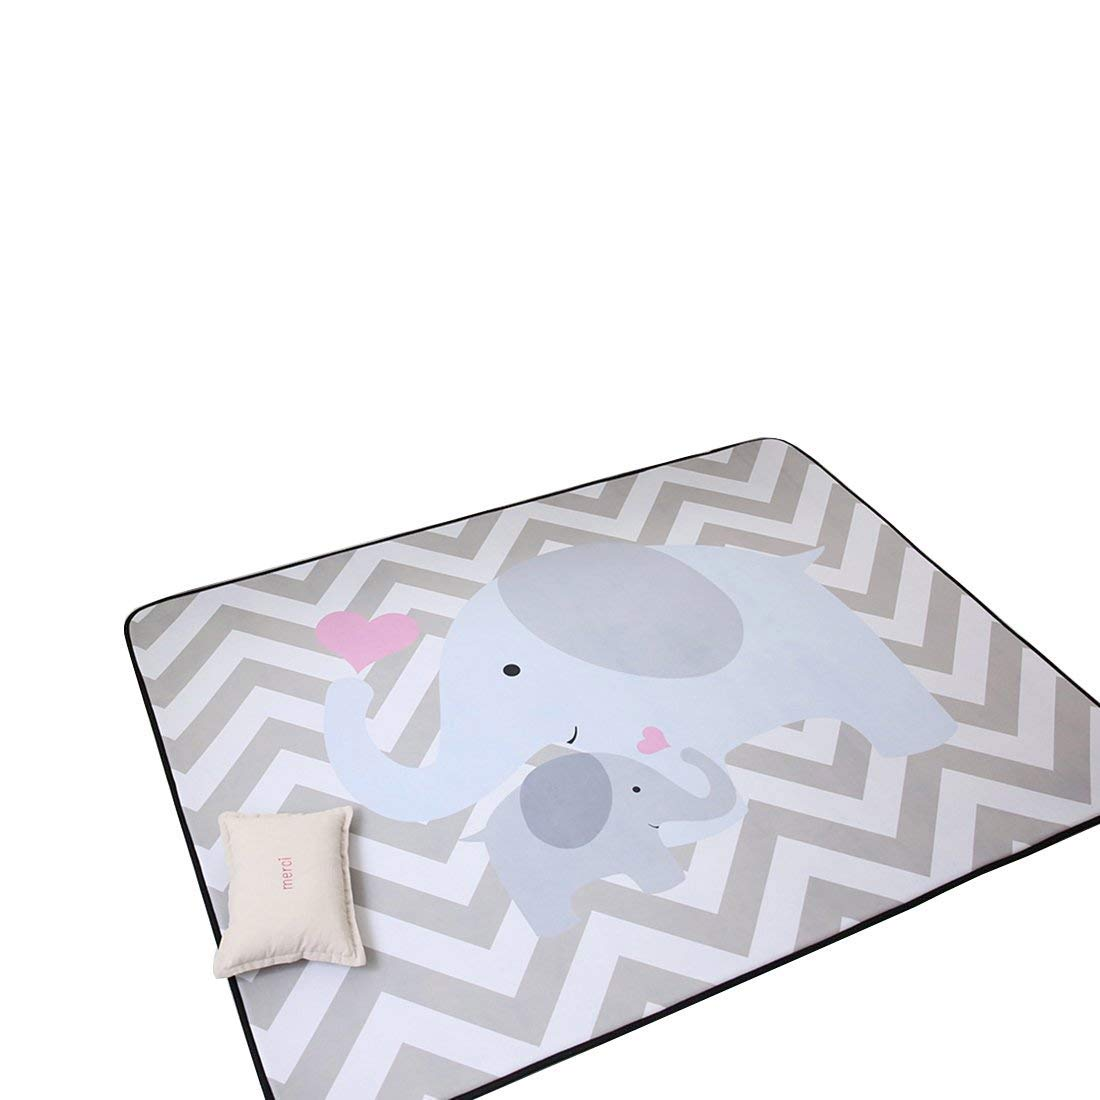 IHEARTYOU Elephant Mommy and Baby Thicken Extra Lagre Foam Kids Play Mat Baby Rug Soft Non-Slip Baby Crawling Mat Playmats Kids Rug Baby Gym Mat, 0.8'' Thick